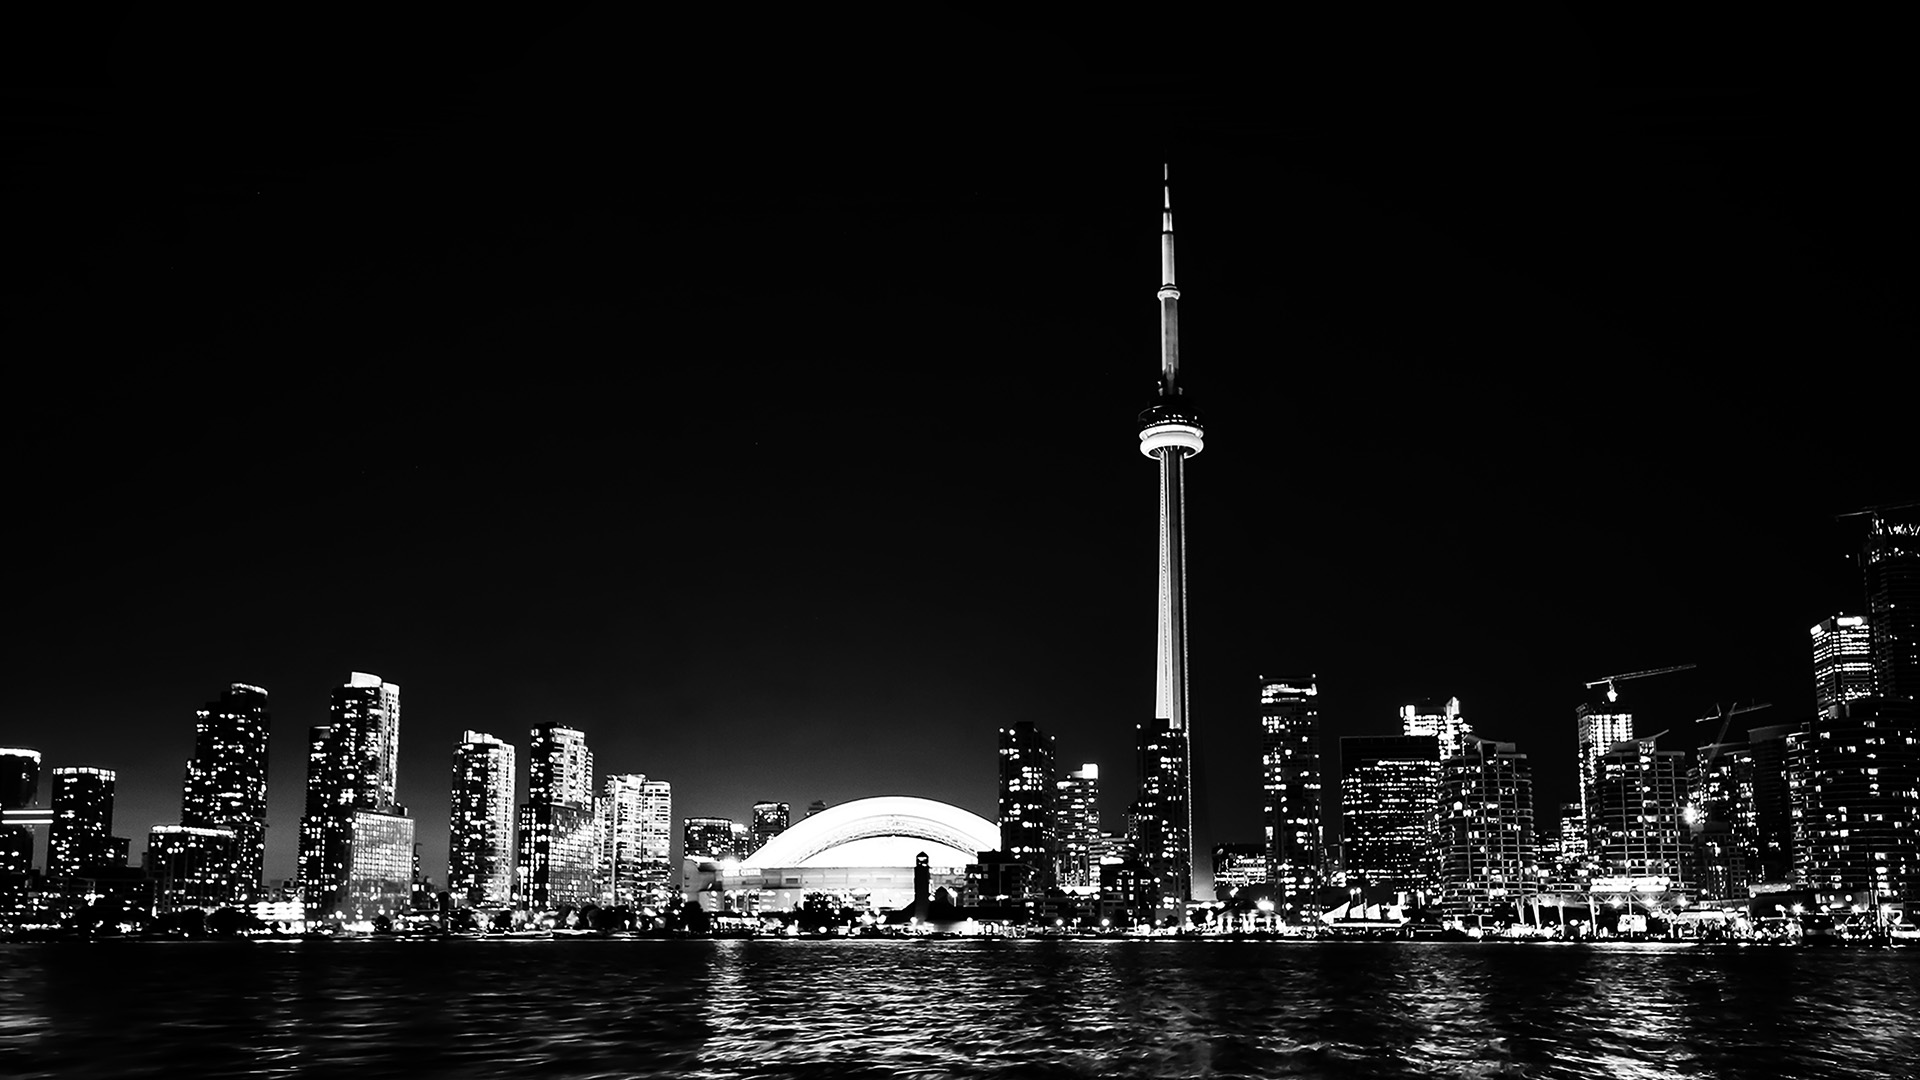 Hd Iphone Wallpapers Fall Mt45 Toronto City Night Missing Tower Dark Cityview Bw